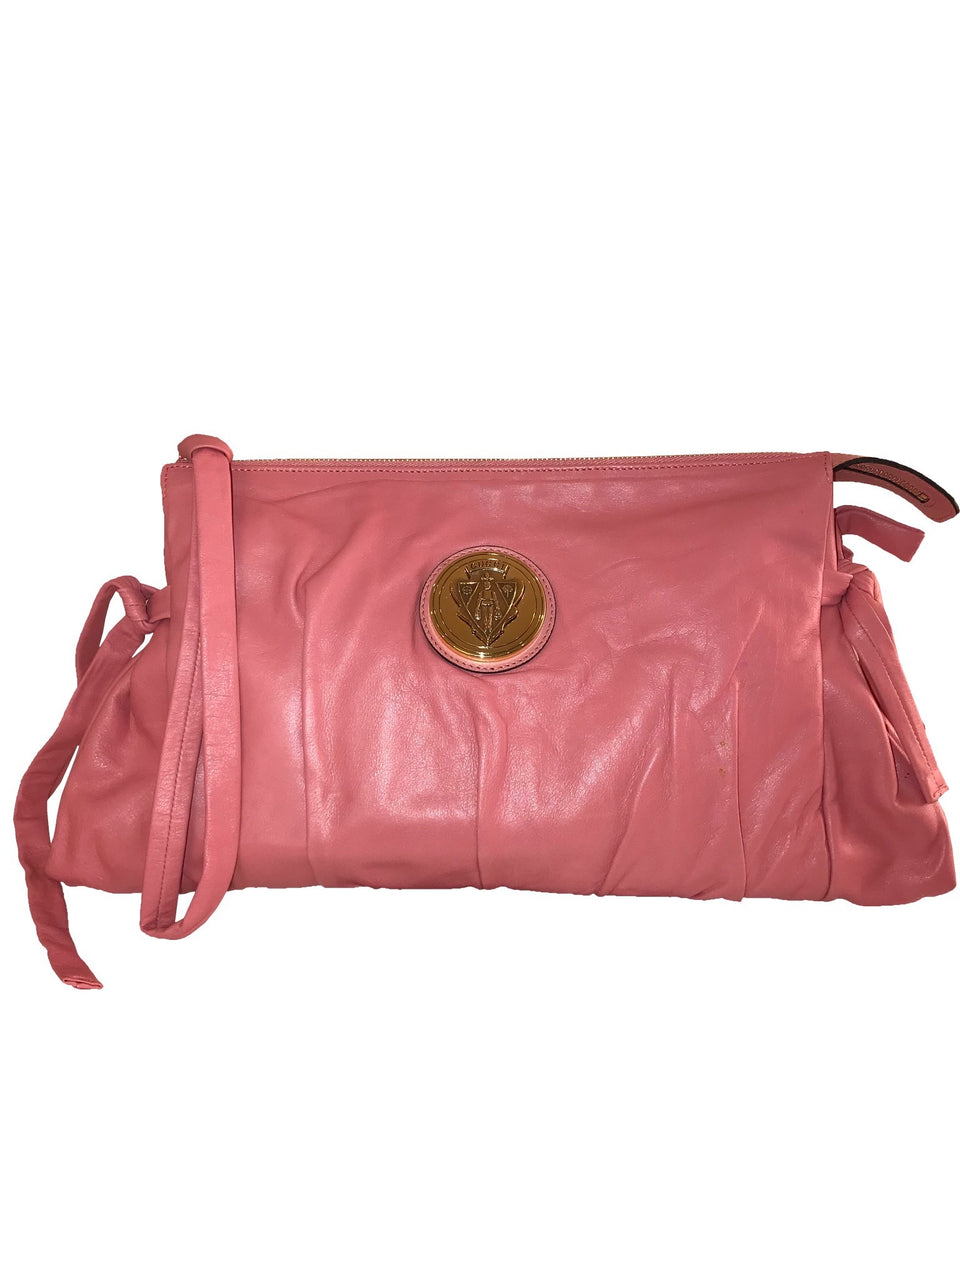 Pink Leather Hysteria Clutch